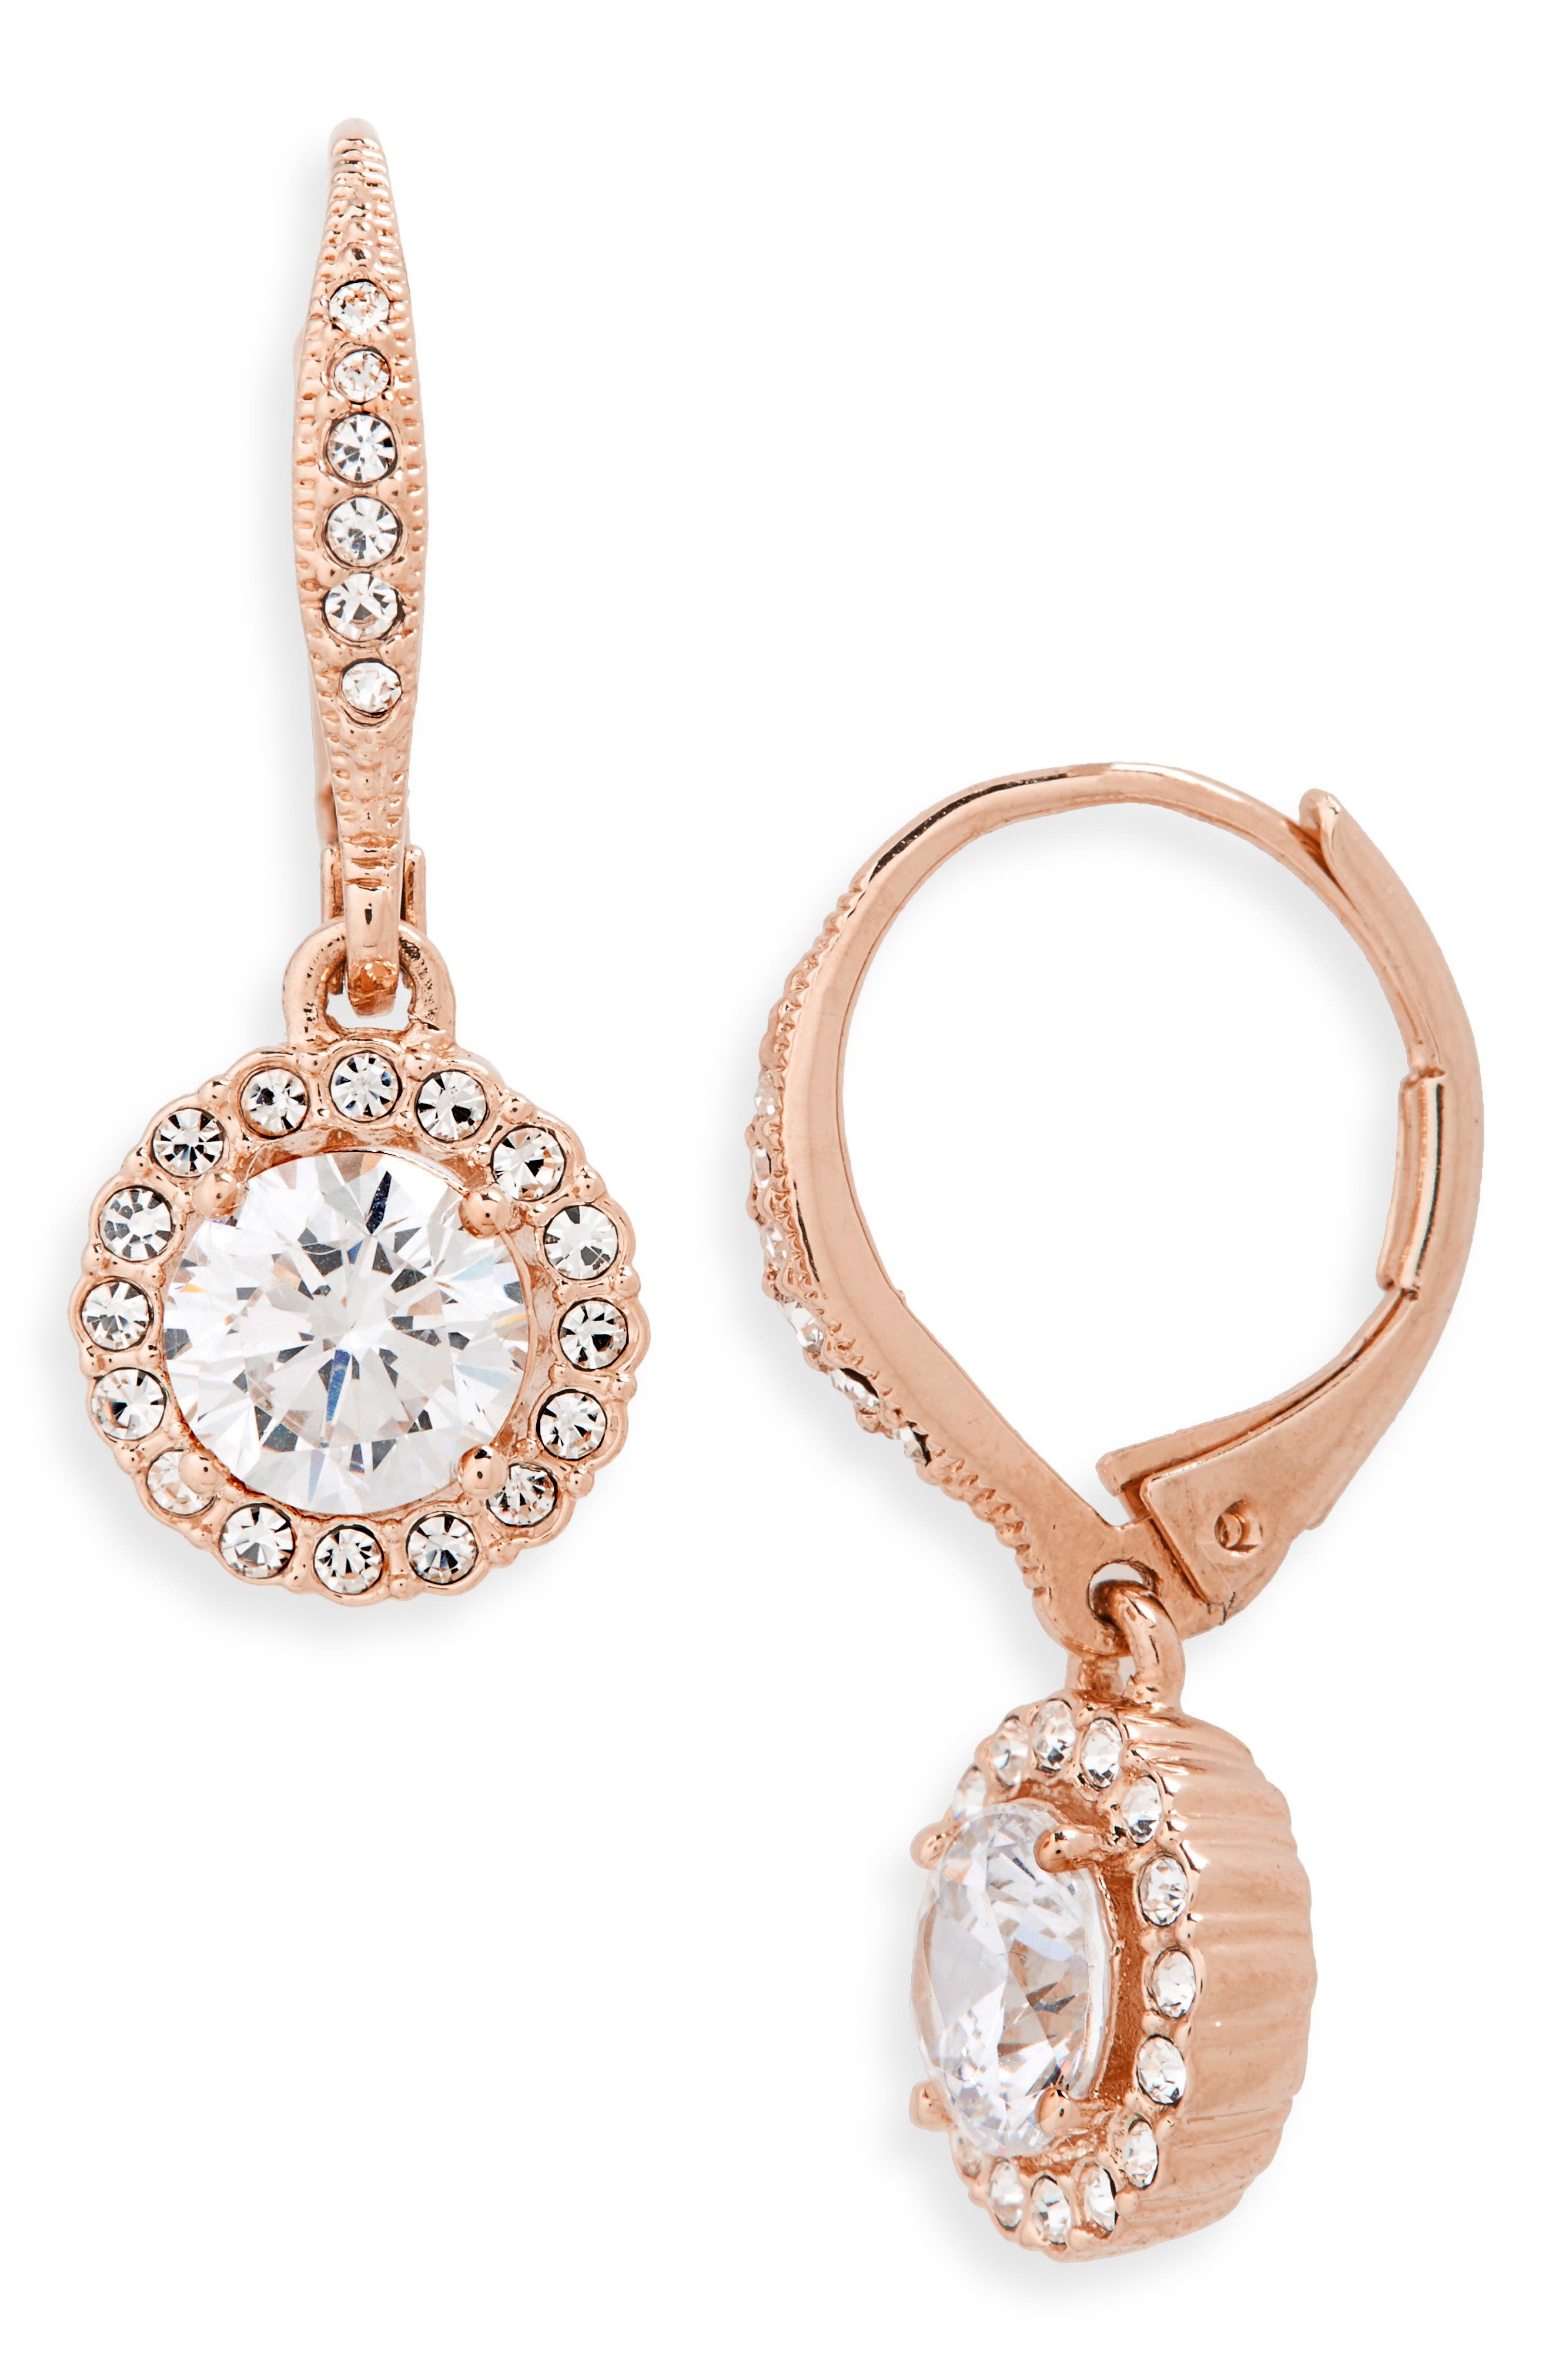 Cubic Zirconia Drop Earrings,                         Main,                         color, Rose Gold/ Clear Crystal